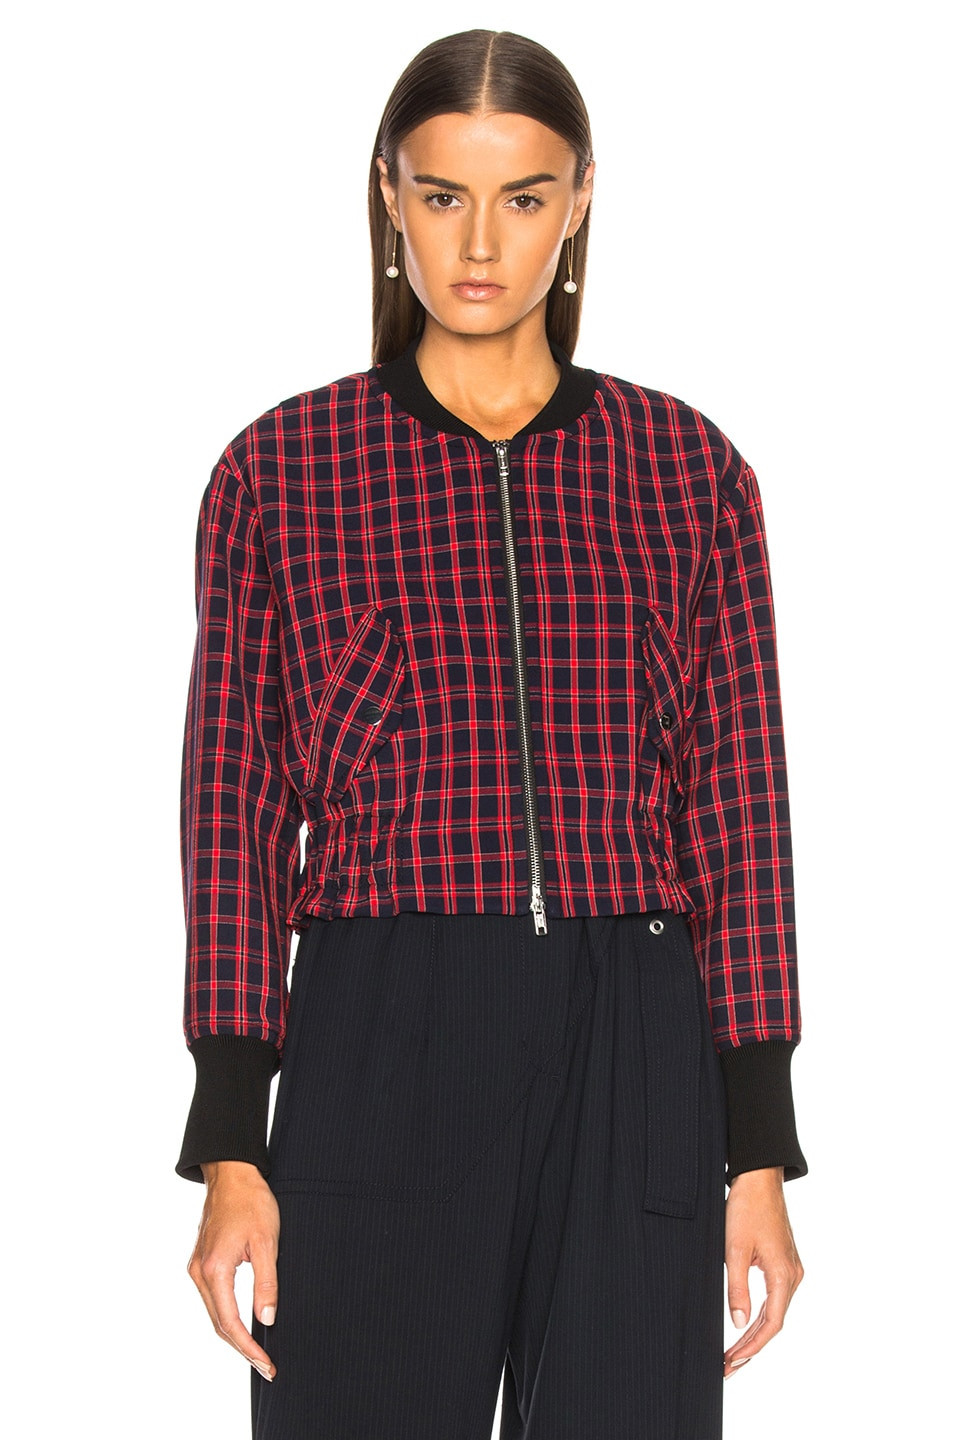 Image 2 of 3.1 phillip lim Plaid Bomber Jacket in Black & Red